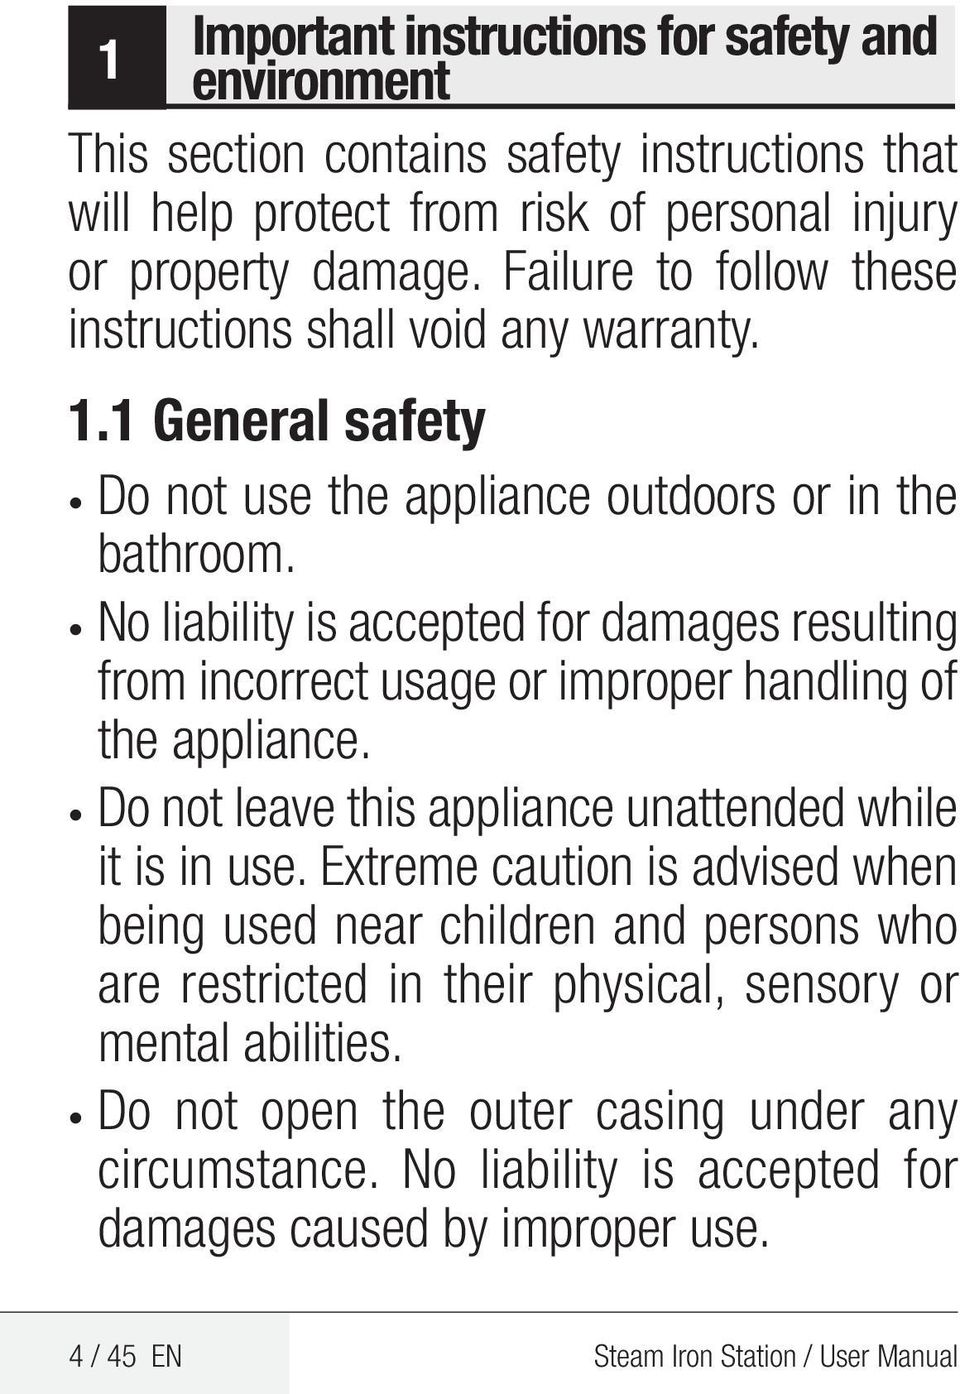 No liability is accepted for damages resulting from incorrect usage or improper handling of the appliance. Do not leave this appliance unattended while it is in use.